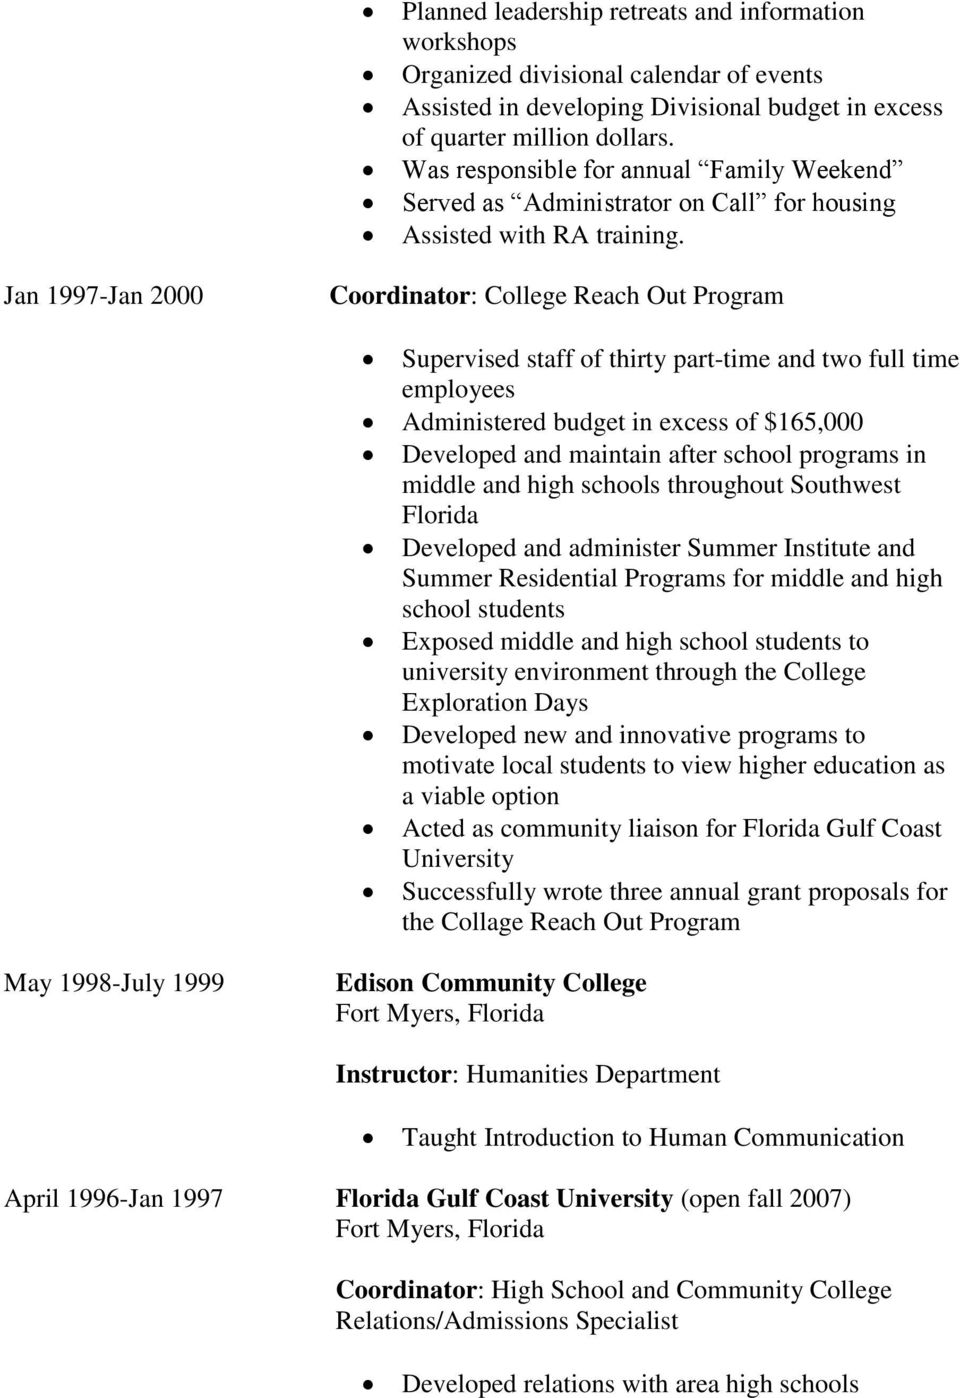 Jan 1997-Jan 2000 Coordinator: College Reach Out Program Supervised staff of thirty part-time and two full time employees Administered budget in excess of $165,000 Developed and maintain after school